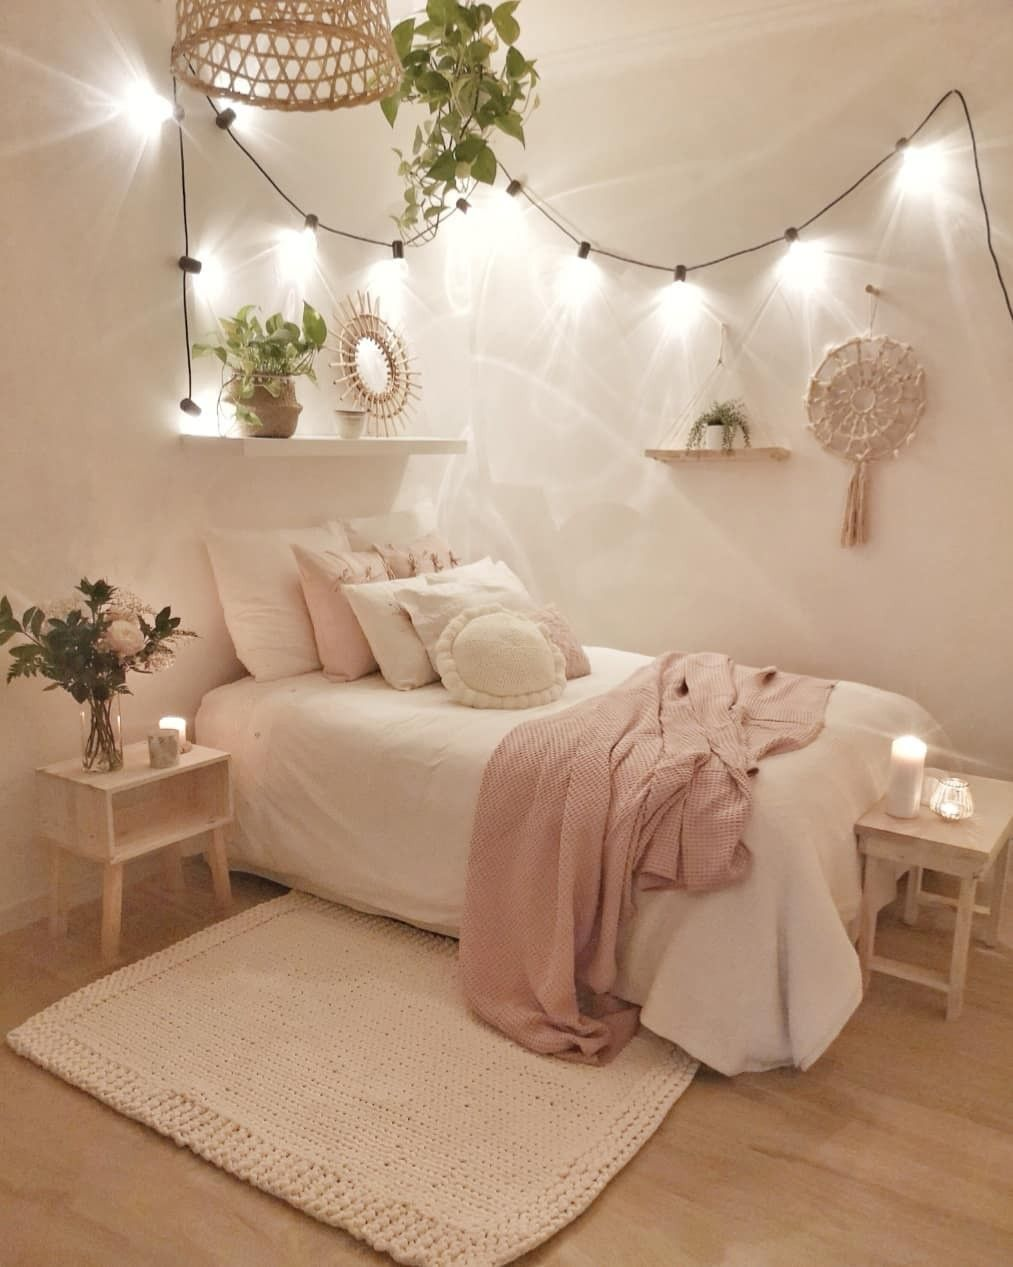 Pin By A Swell Dude On New Room Ideas Aesthetic Bedroom